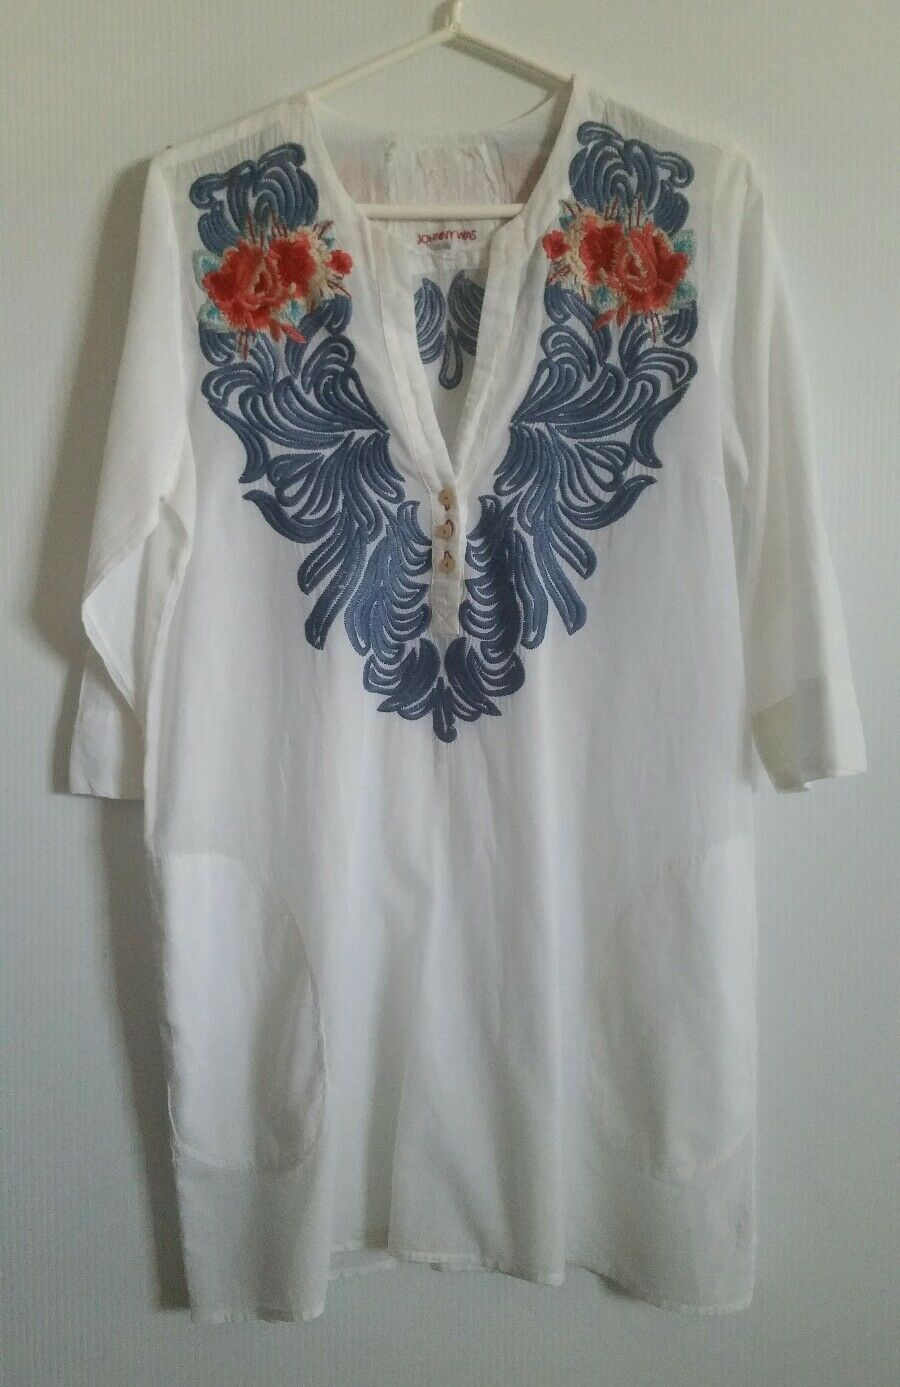 Johnny Was Was Was 3J Workshop Floral Embroidered  Sz S Small Tunic Top Cover Up Dress 6d37b8